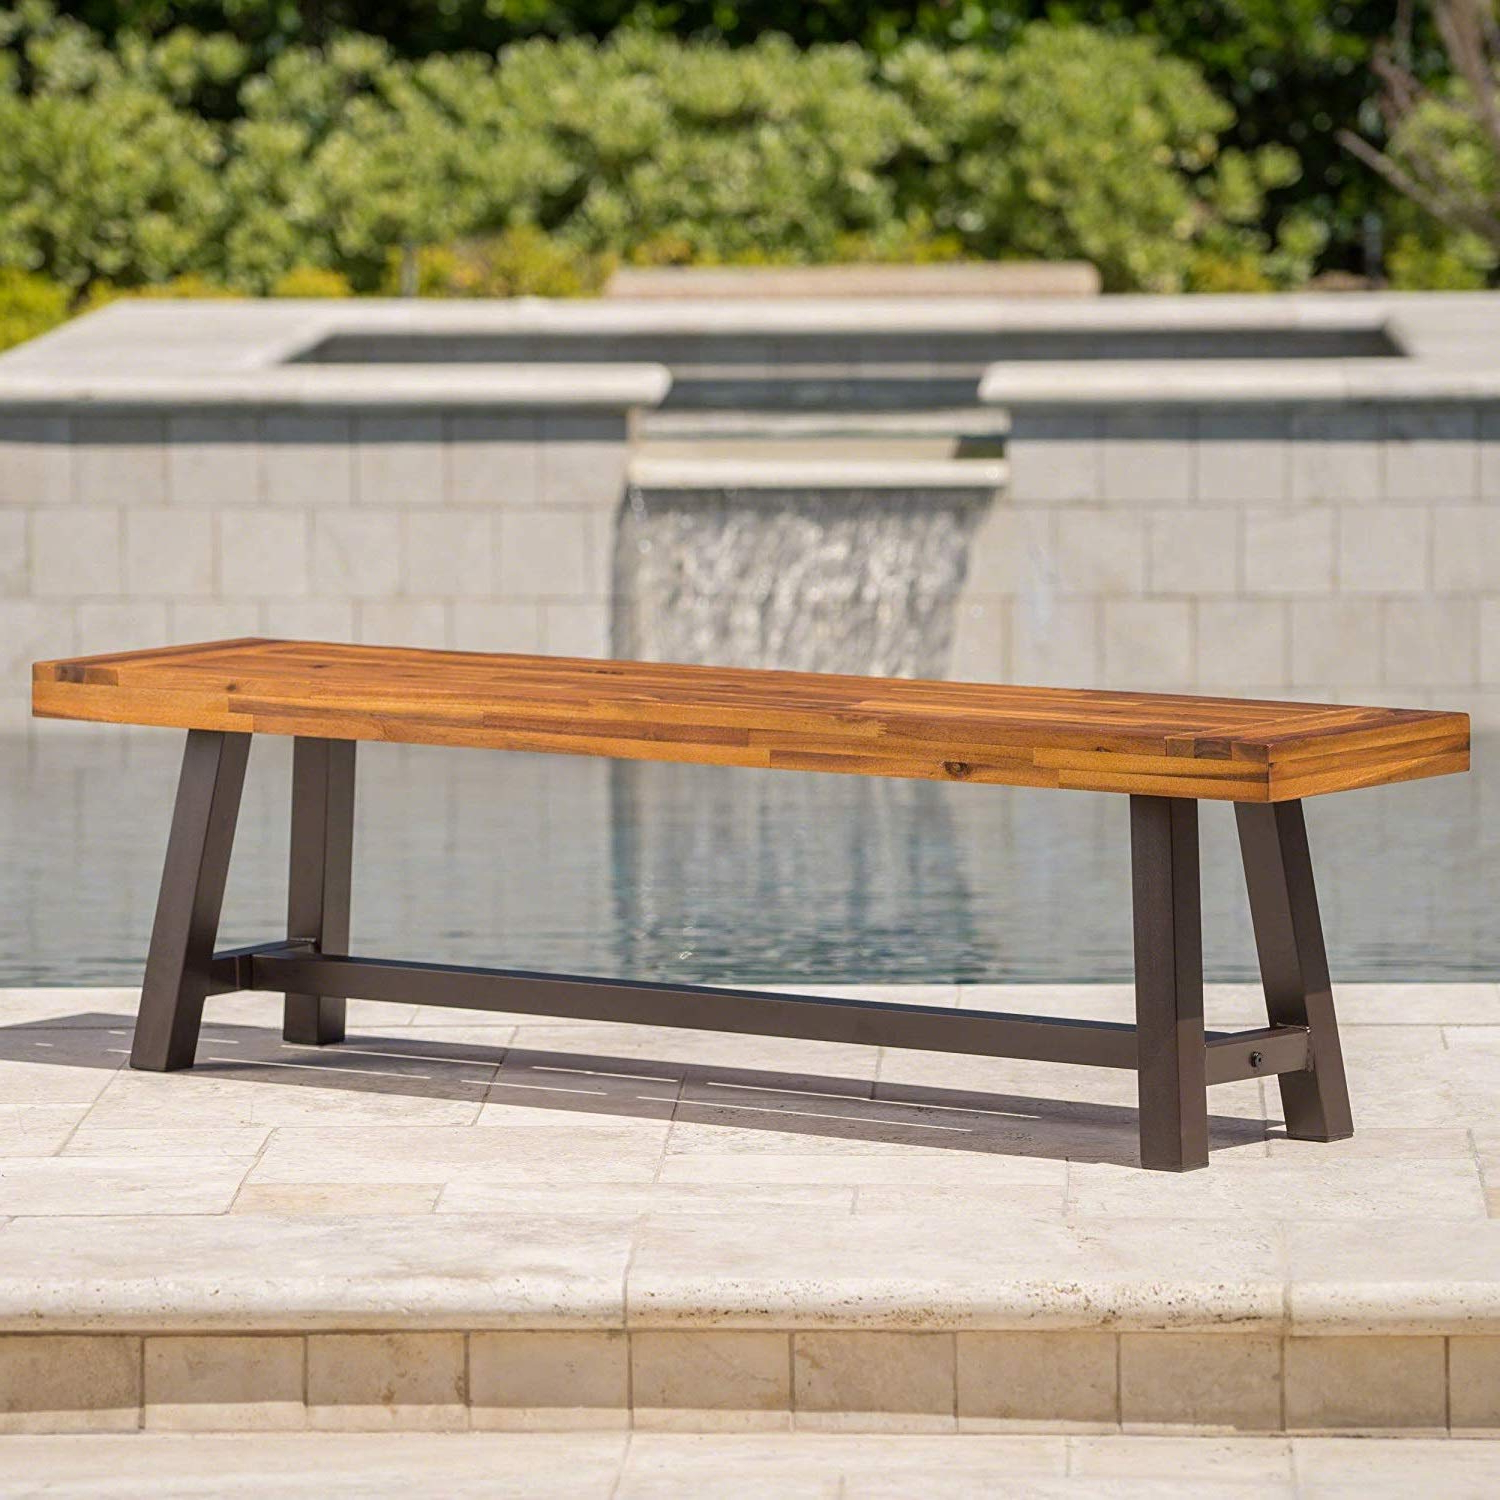 Amazon : Rustic Wood Bench Outdoor Acacia Seat Metal For 2020 Wood Garden Benches (View 1 of 30)